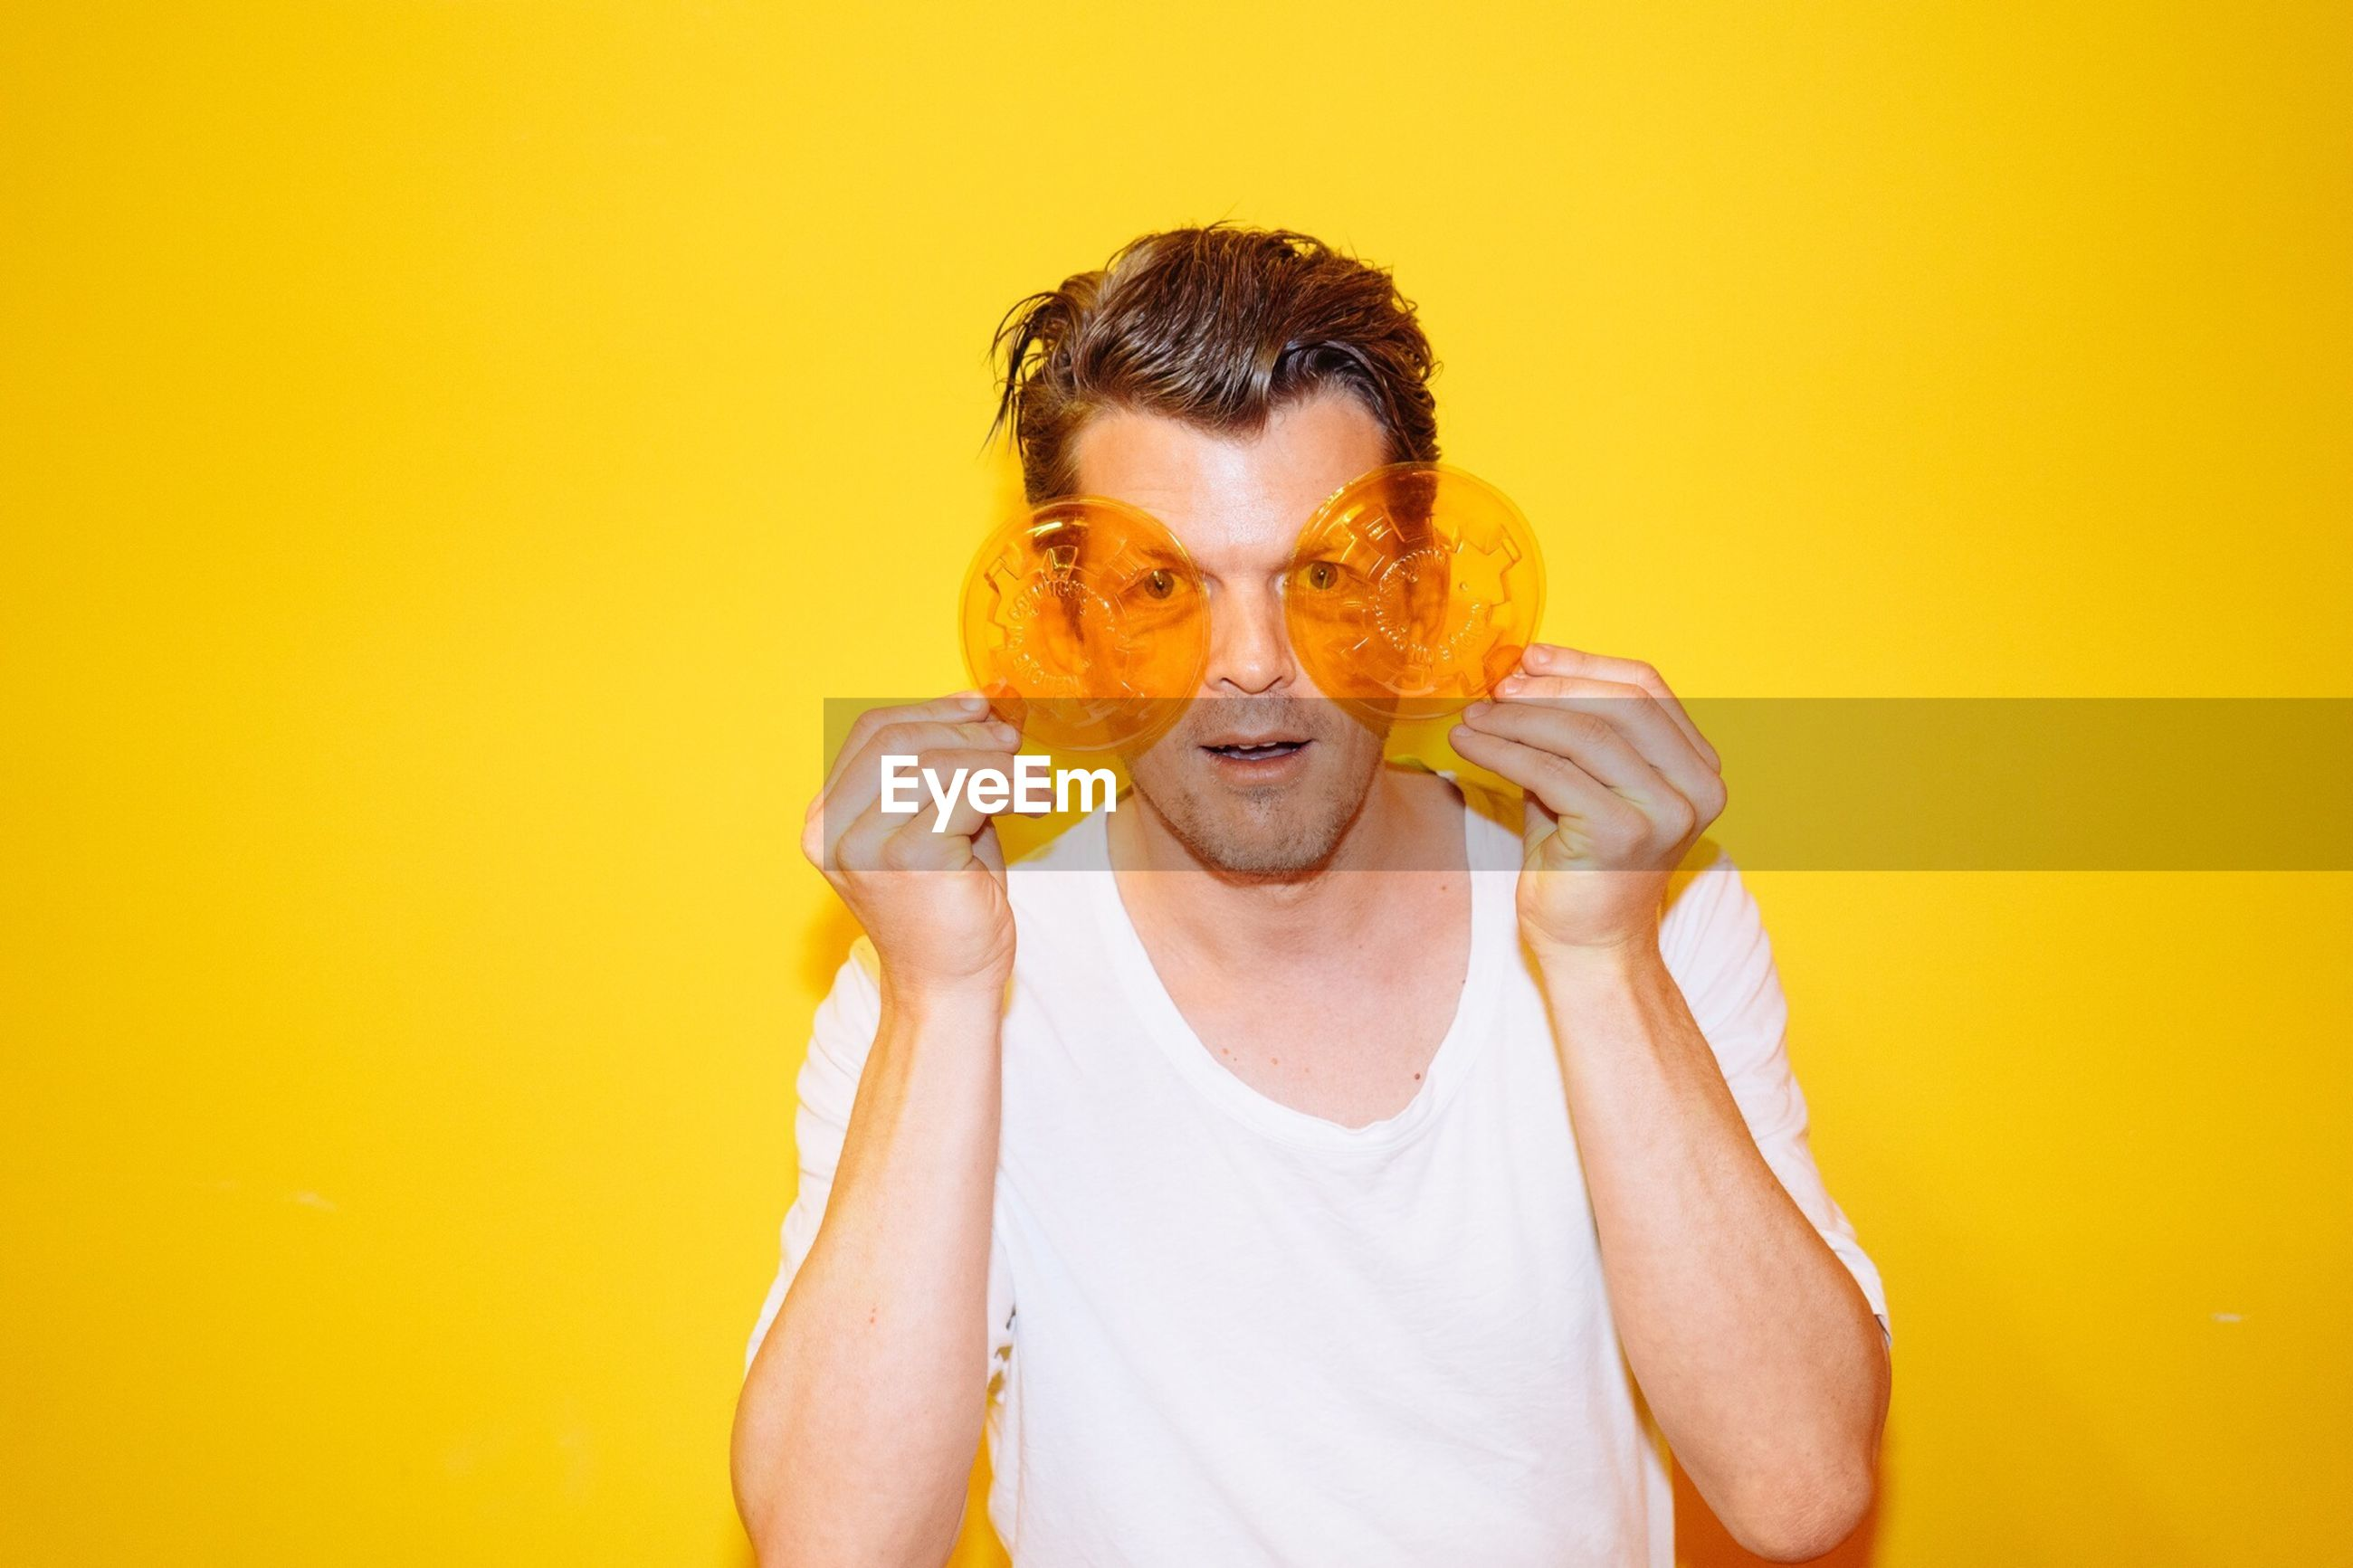 Young man holding see through lids over eyes against yellow background